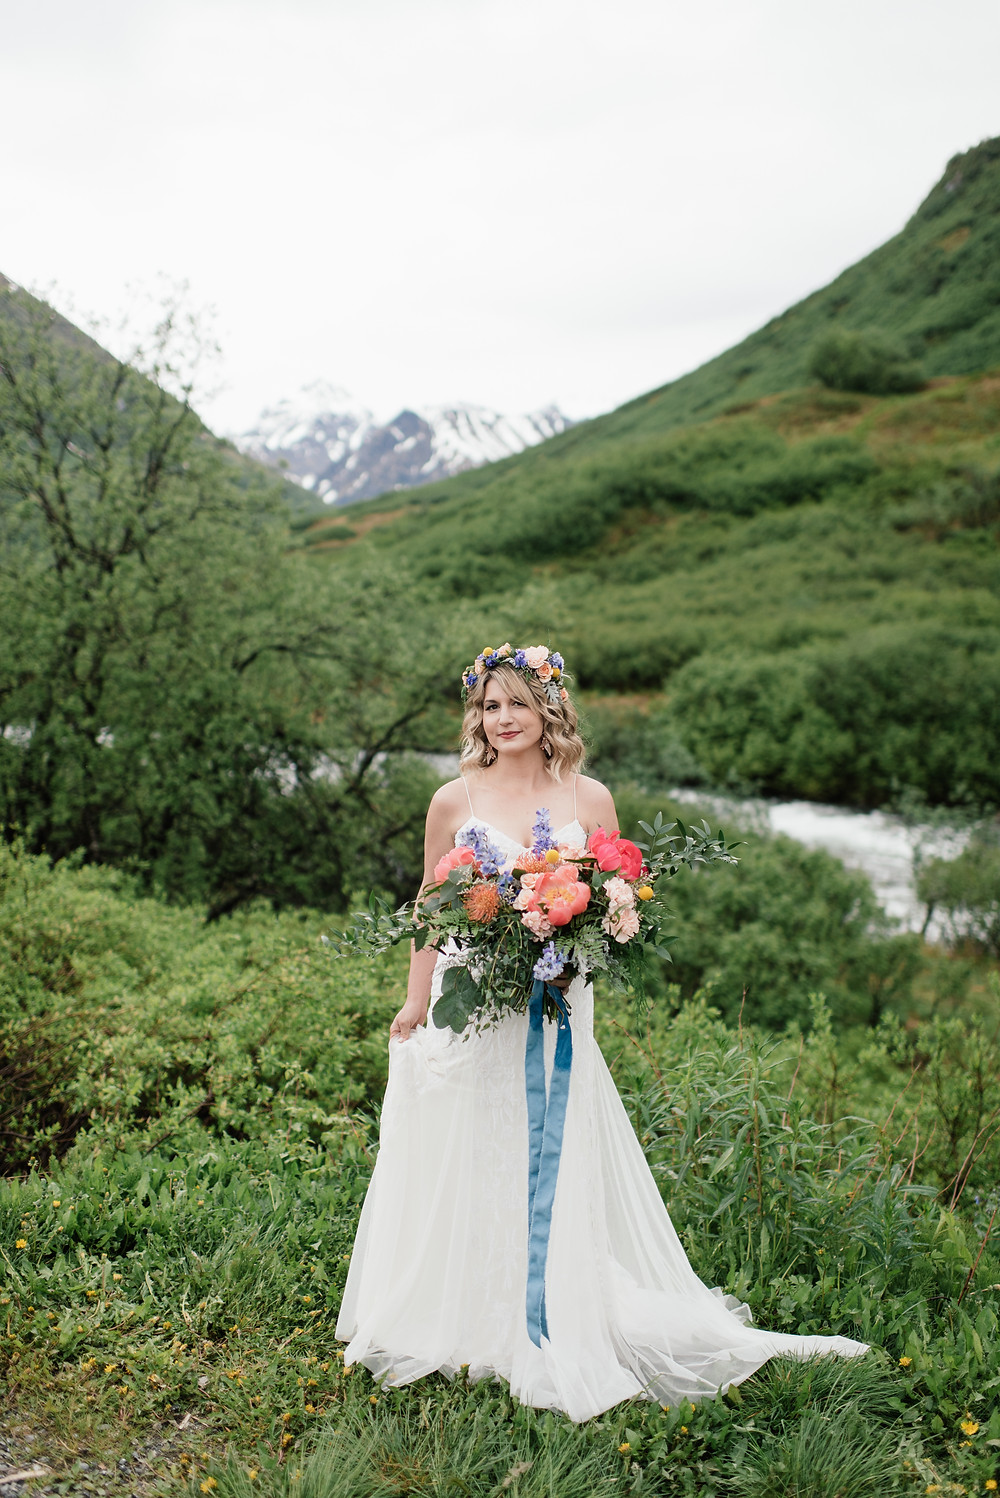 Couple photography up Hatcher Pass Helicopter ceremony, Elope to Alaska with guests, private and remote location